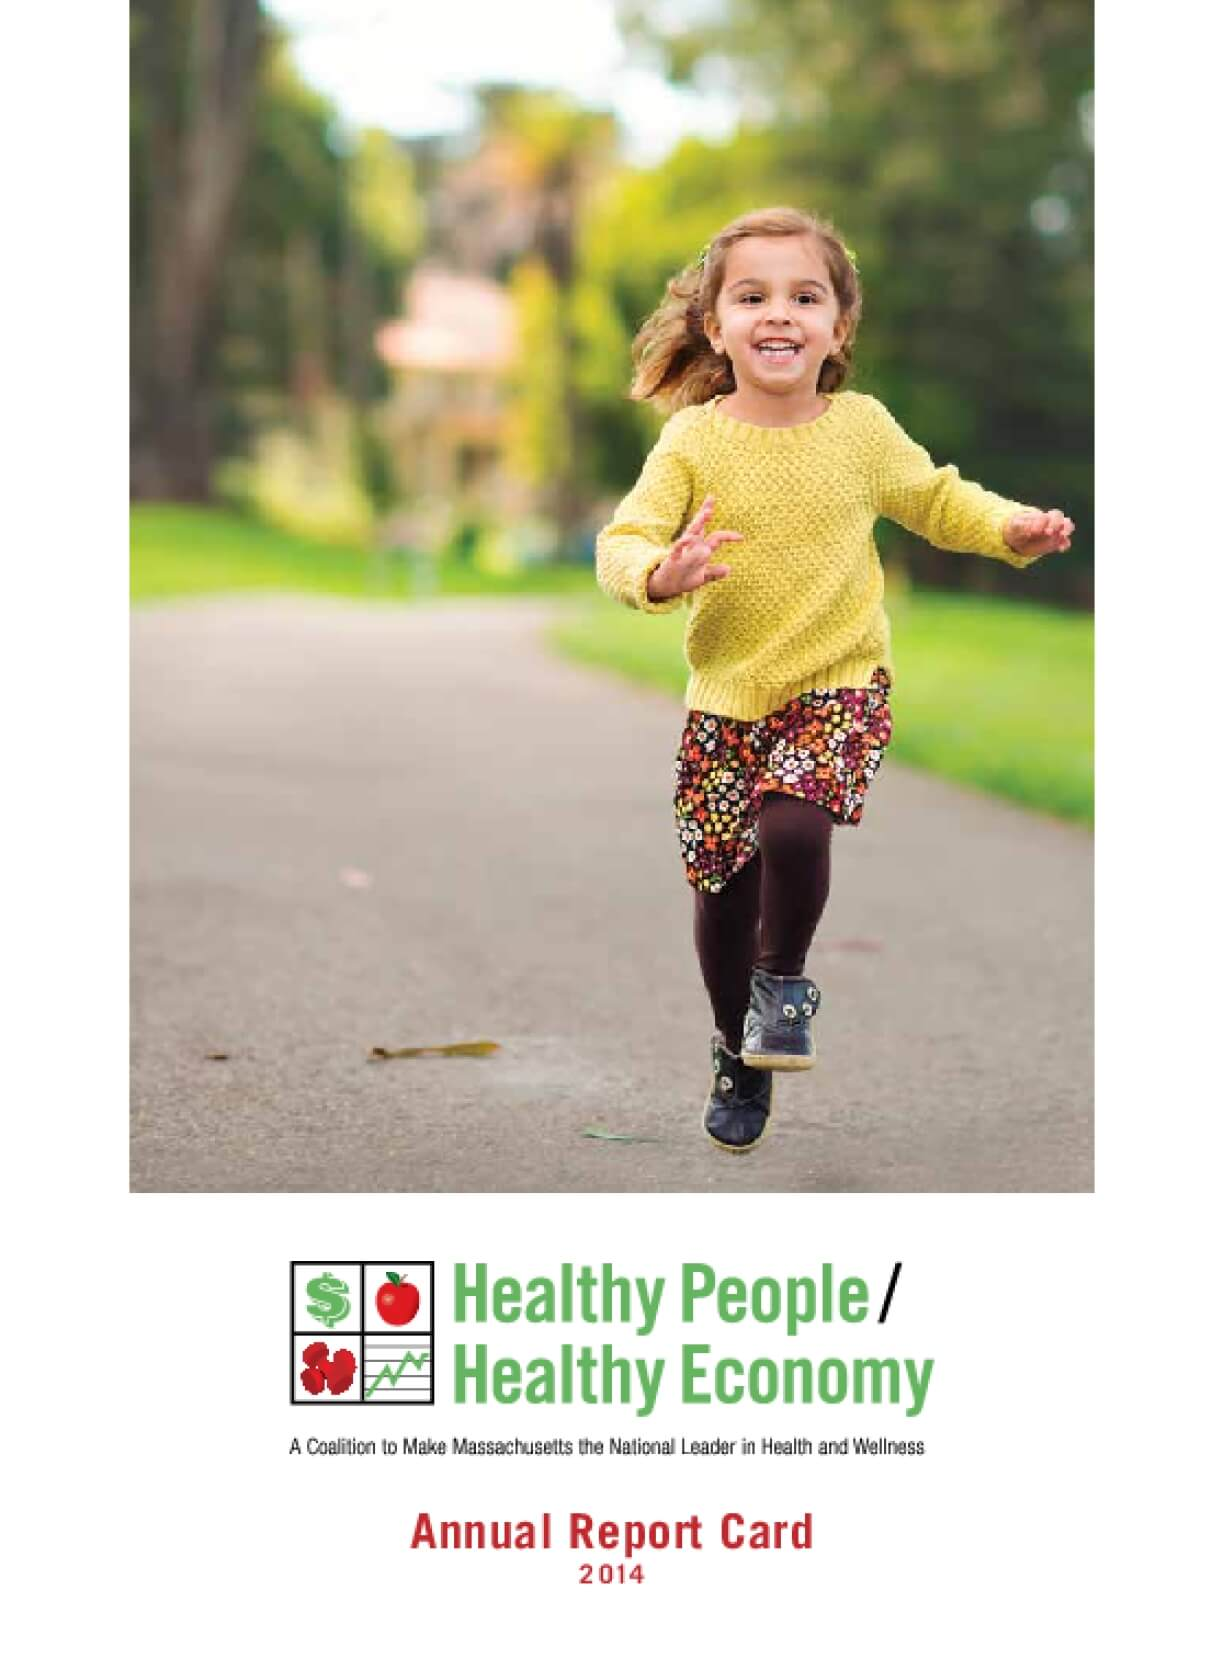 Healthy People/Healthy Economy: Annual Report Card 2014